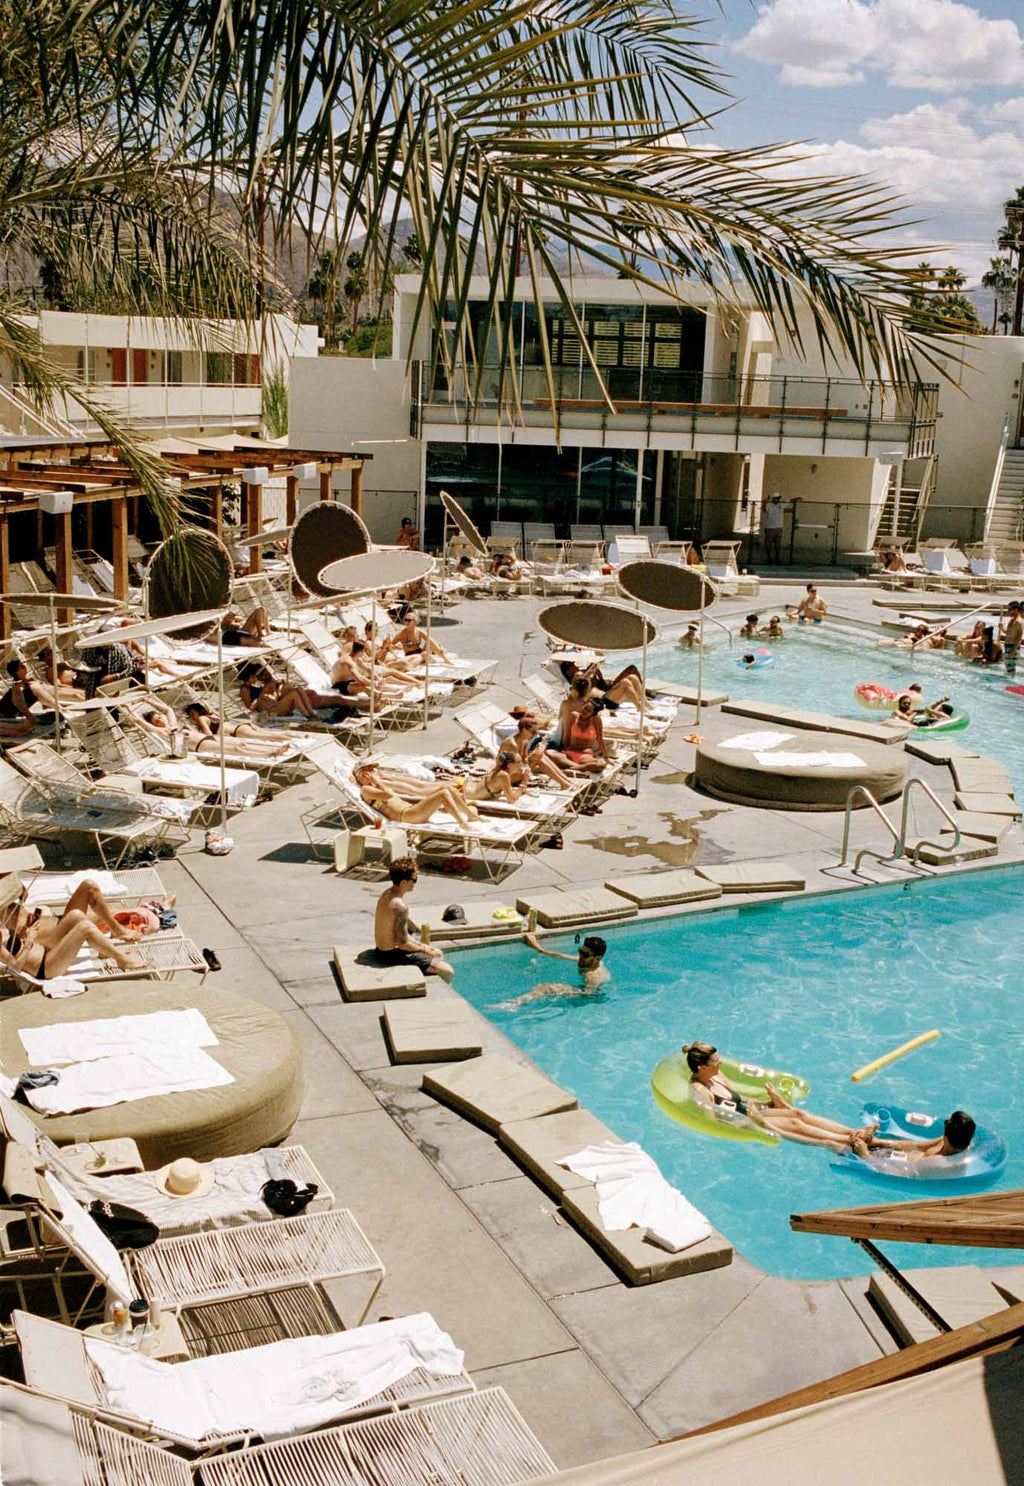 PALM SPRINGS POOL